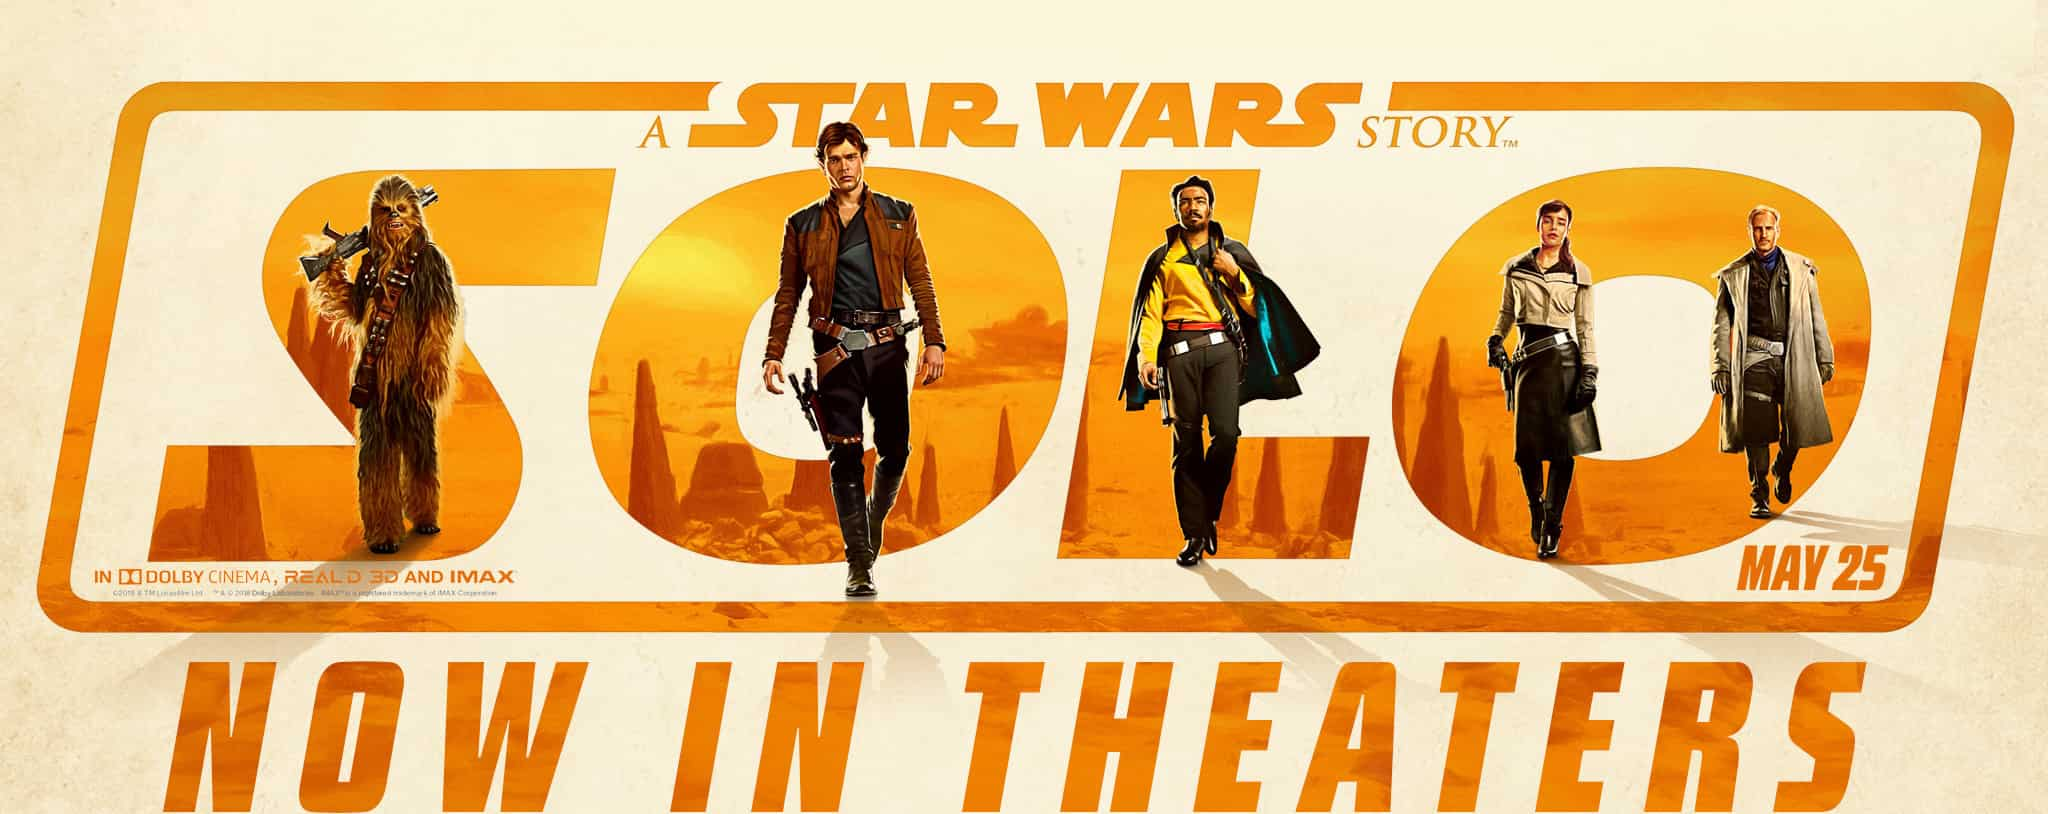 Solo A Star Wars Story (2018)